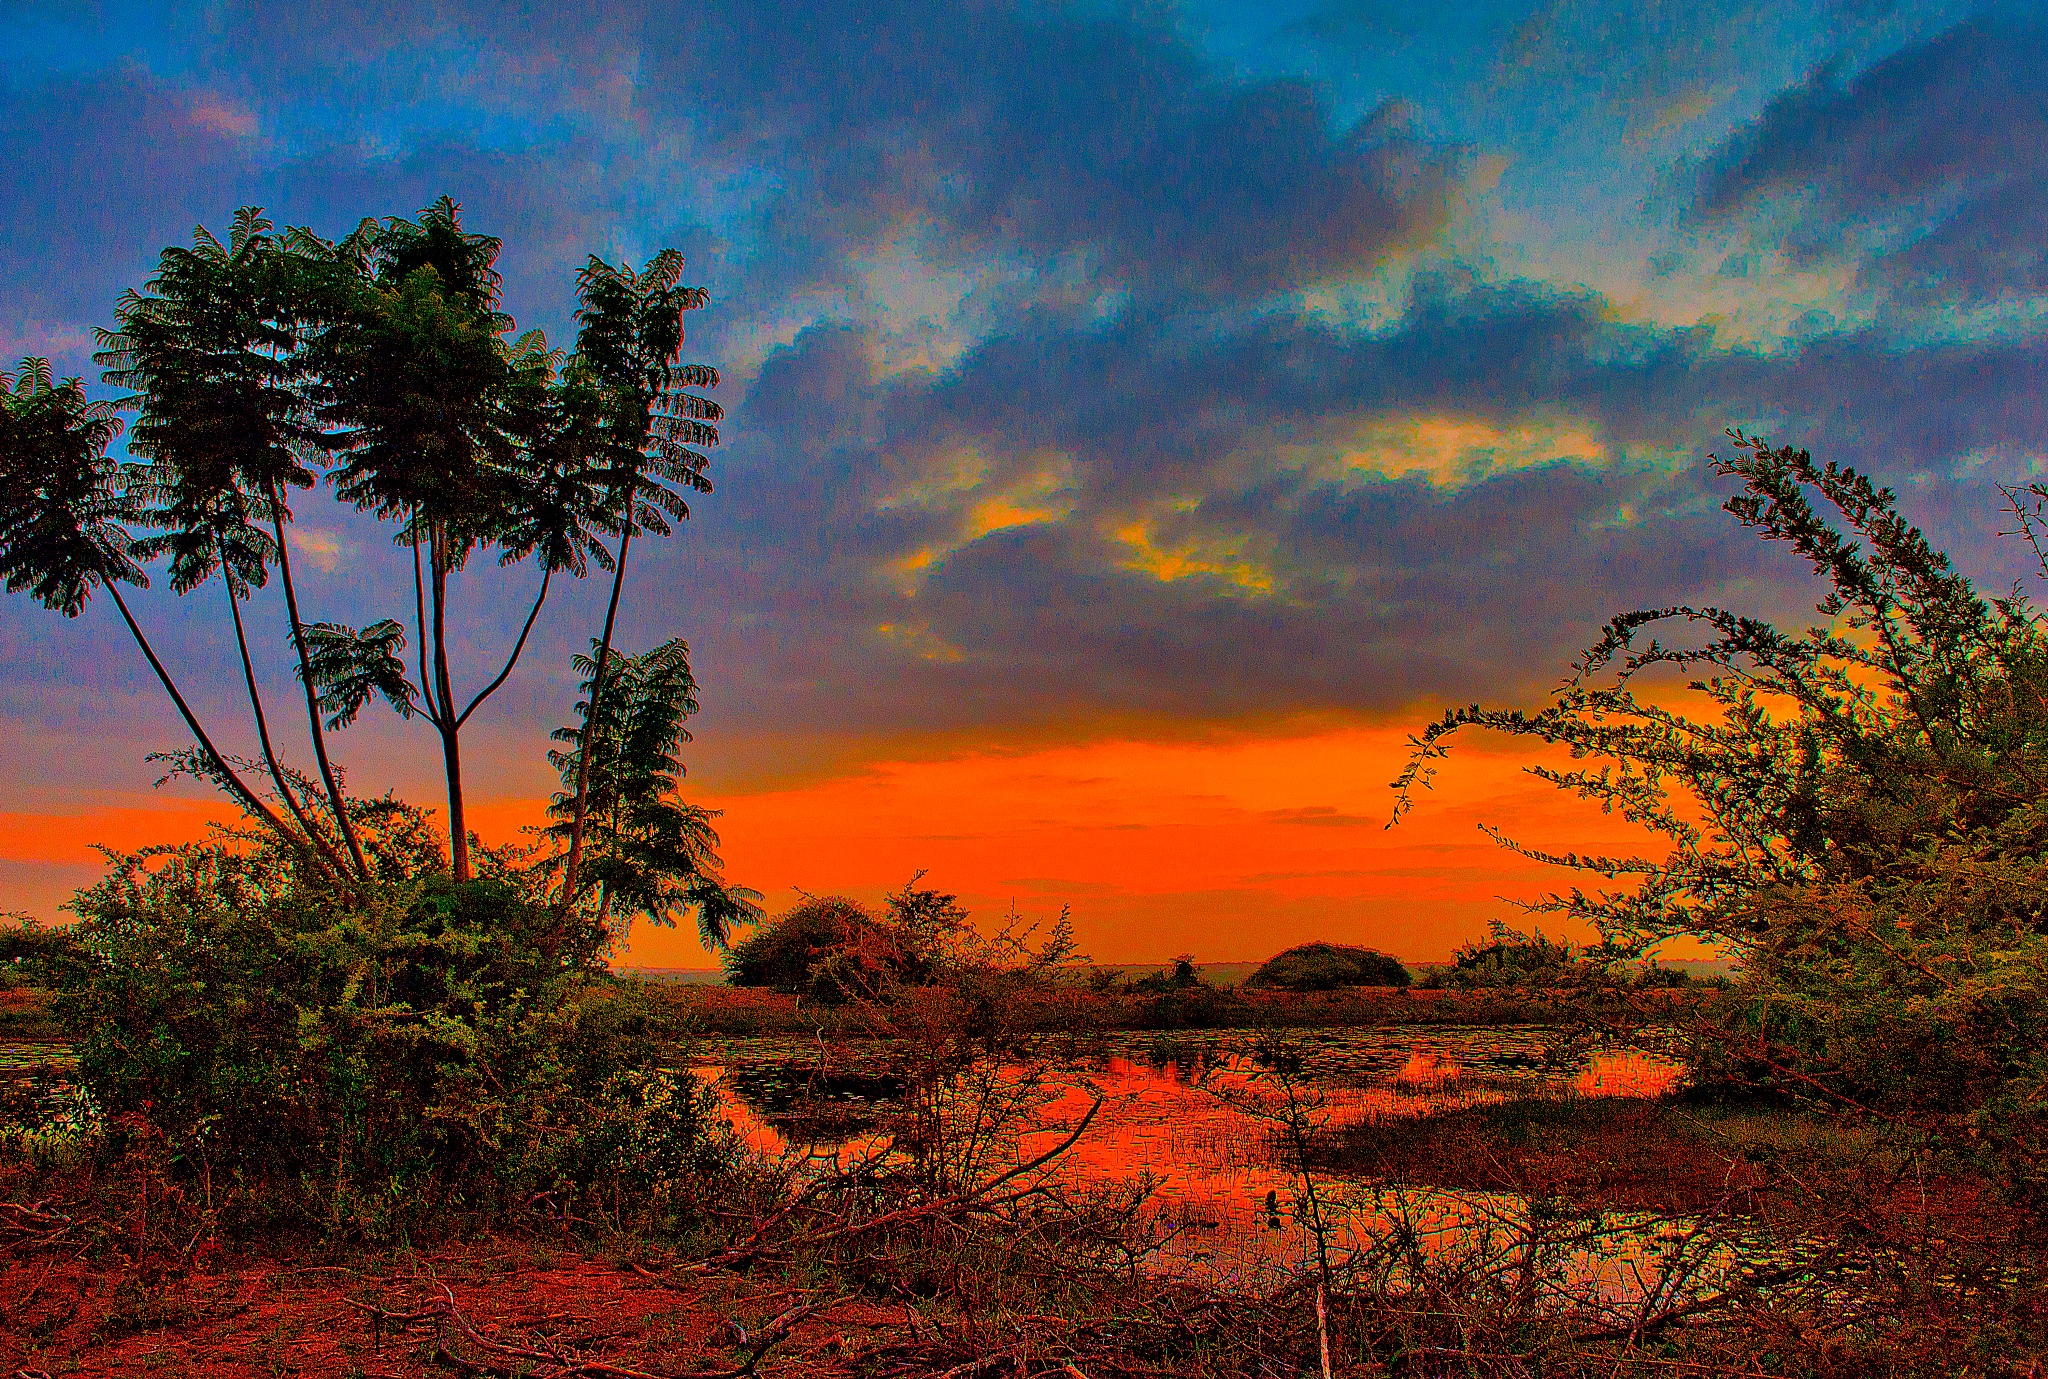 Sunrise Africa by PeterMChambers